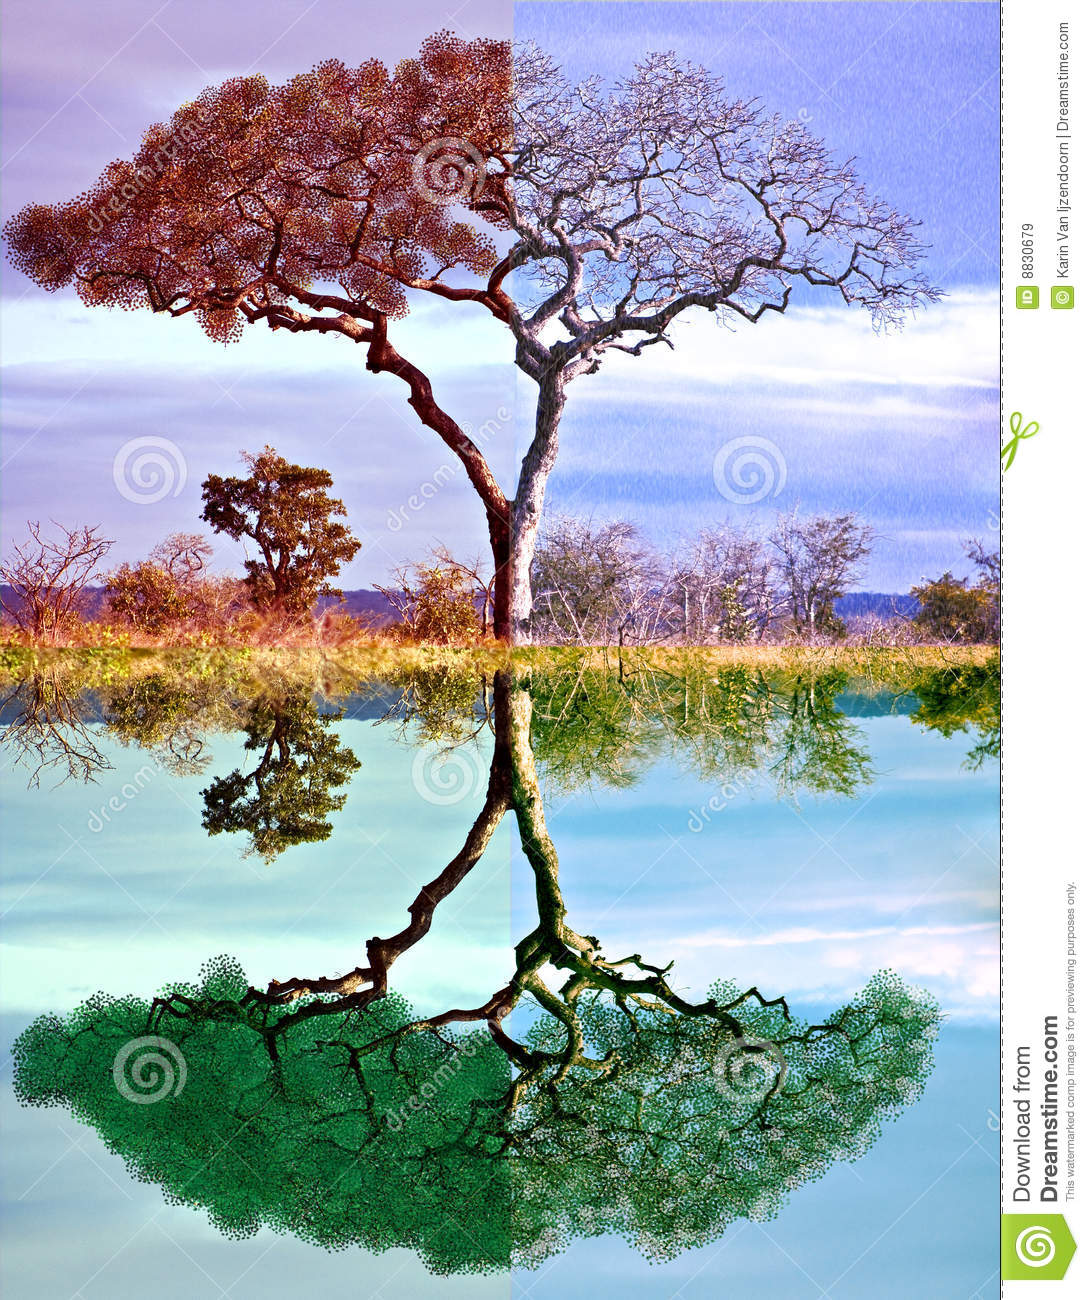 Four Seasons Tree Royalty Free Stock Images